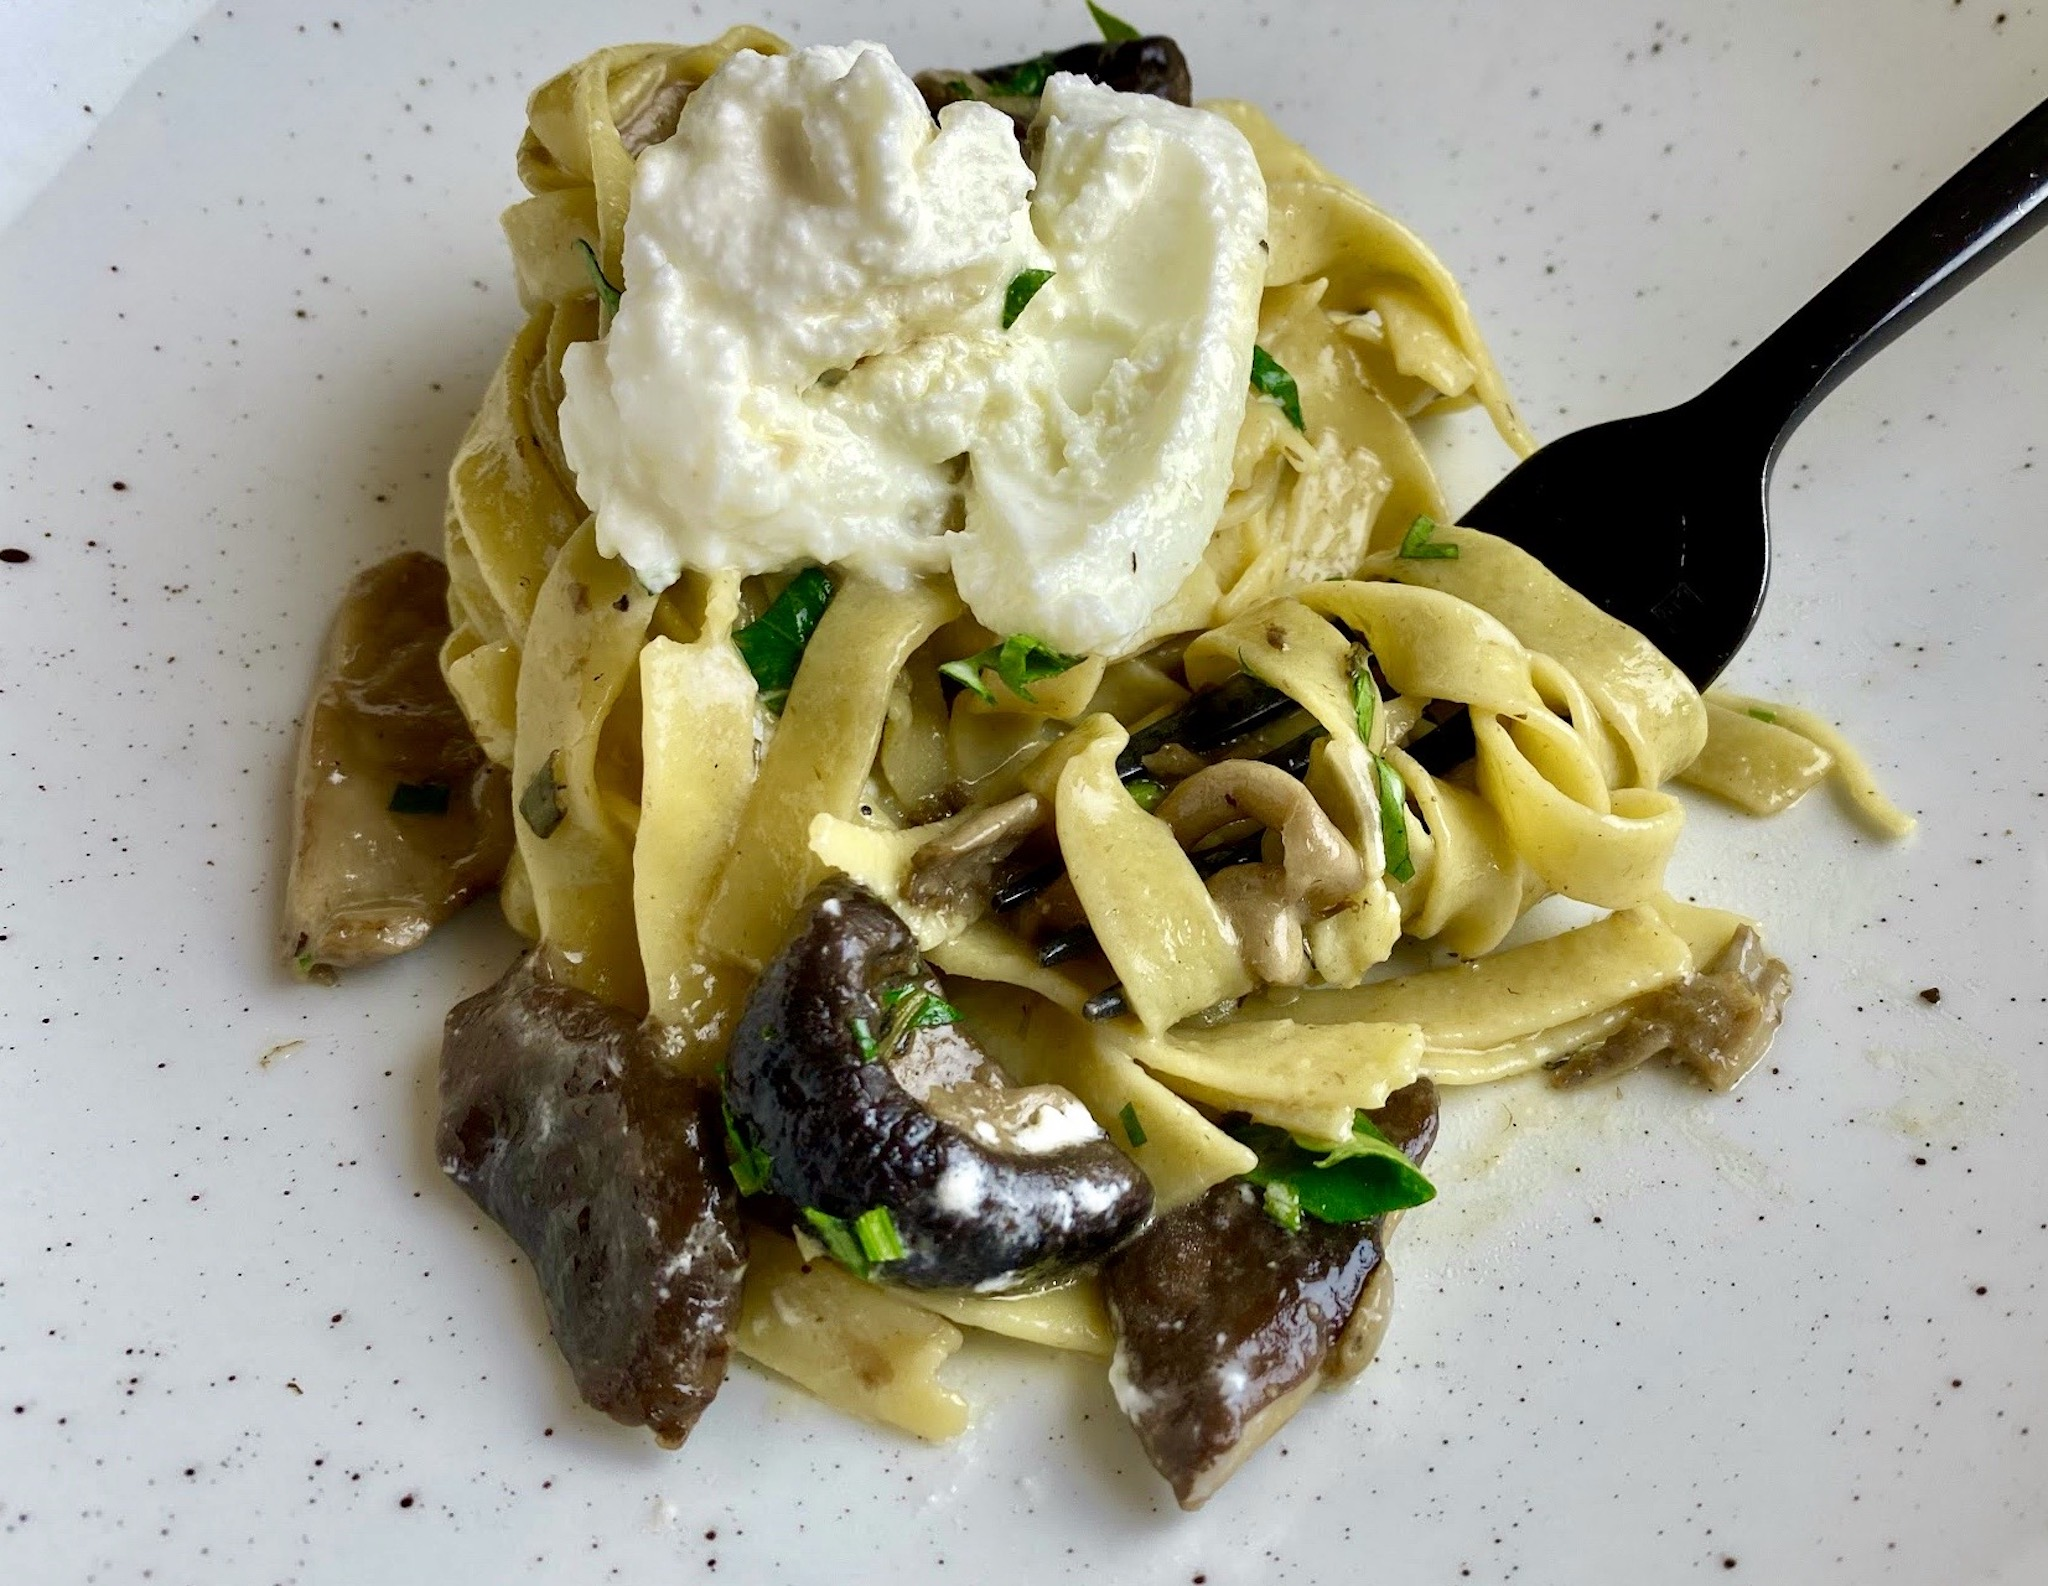 Two Graces - Gracie Fettucine with wild & tame mushrooms, goat cheese and herb butter